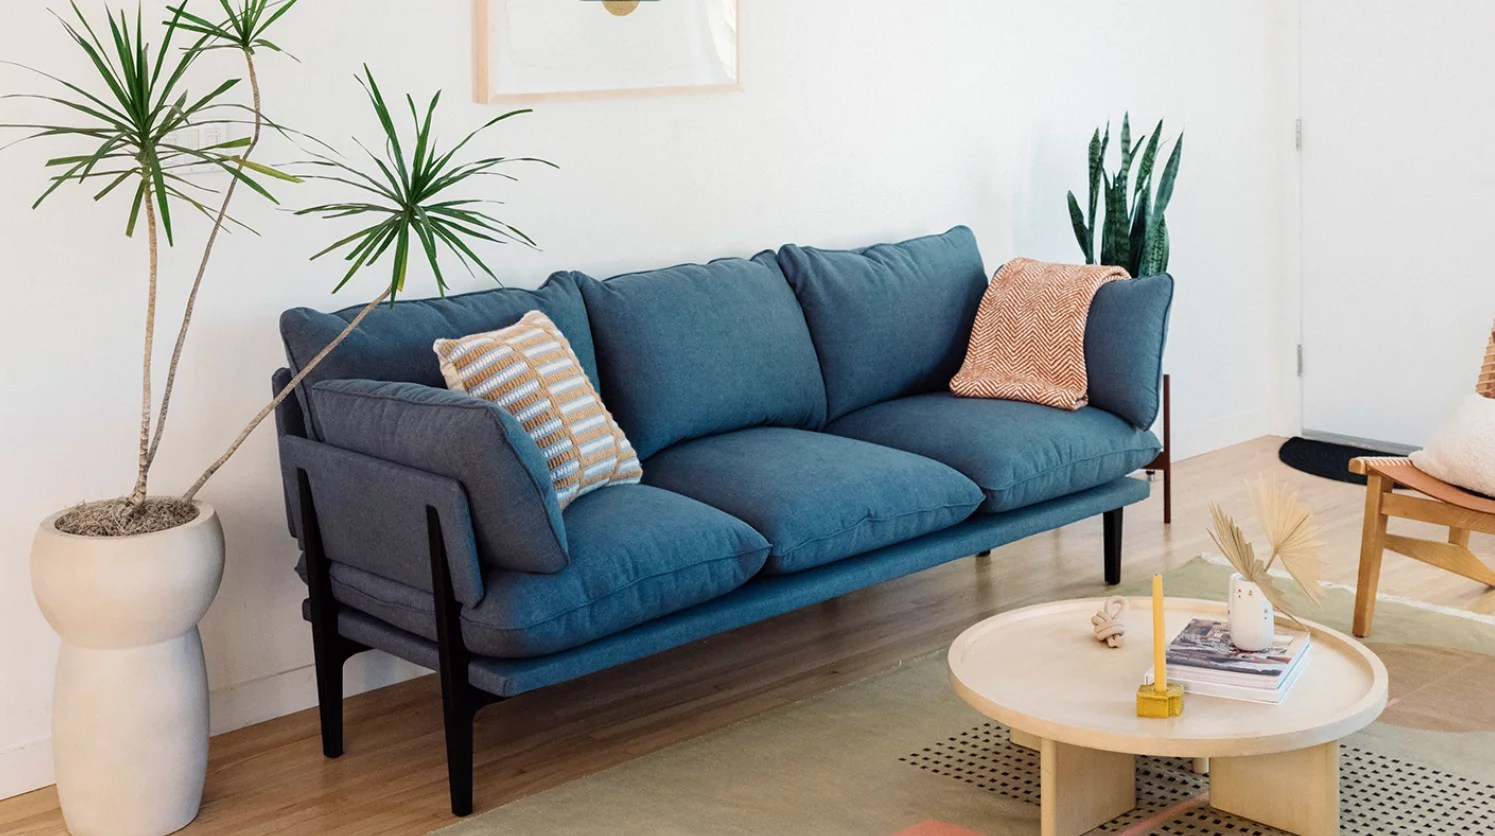 Best And Most Comfortable Couches And Sofas 2021 Popsugar Home